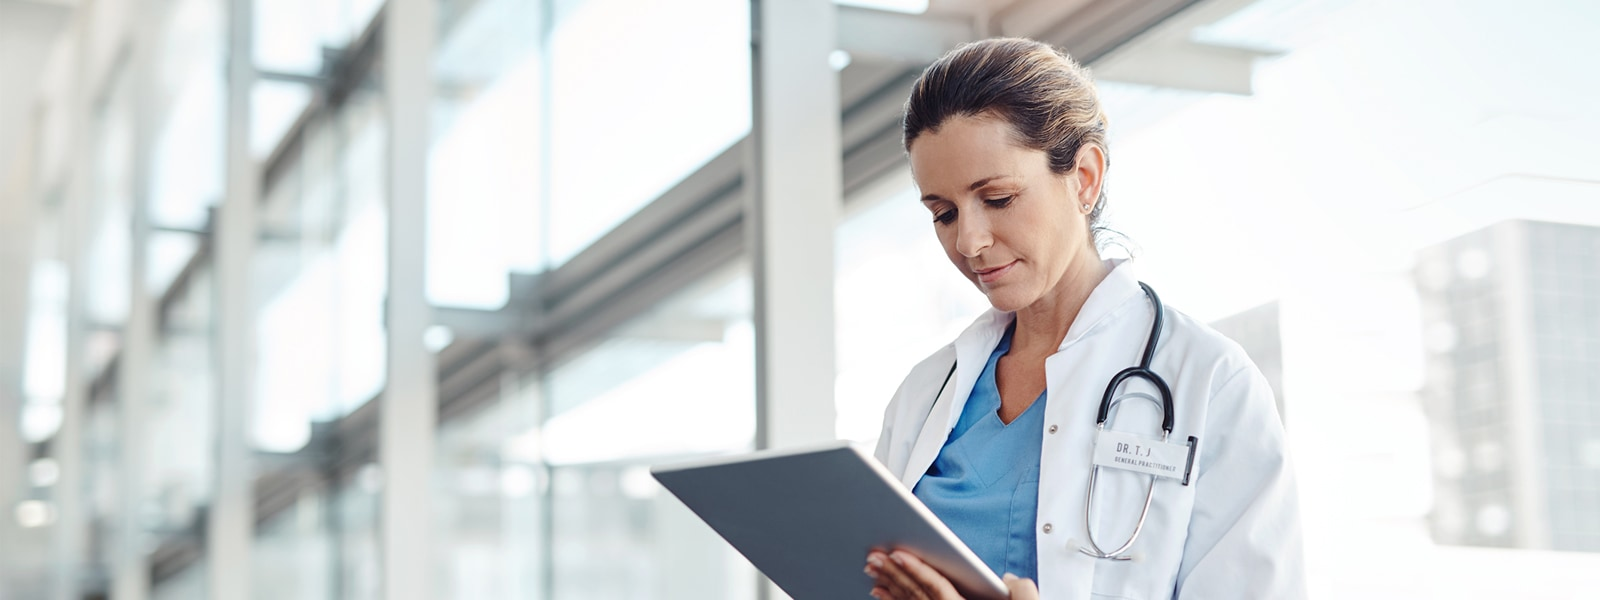 Where Can I Buy Isotretinoin | RxUSA Healthcare